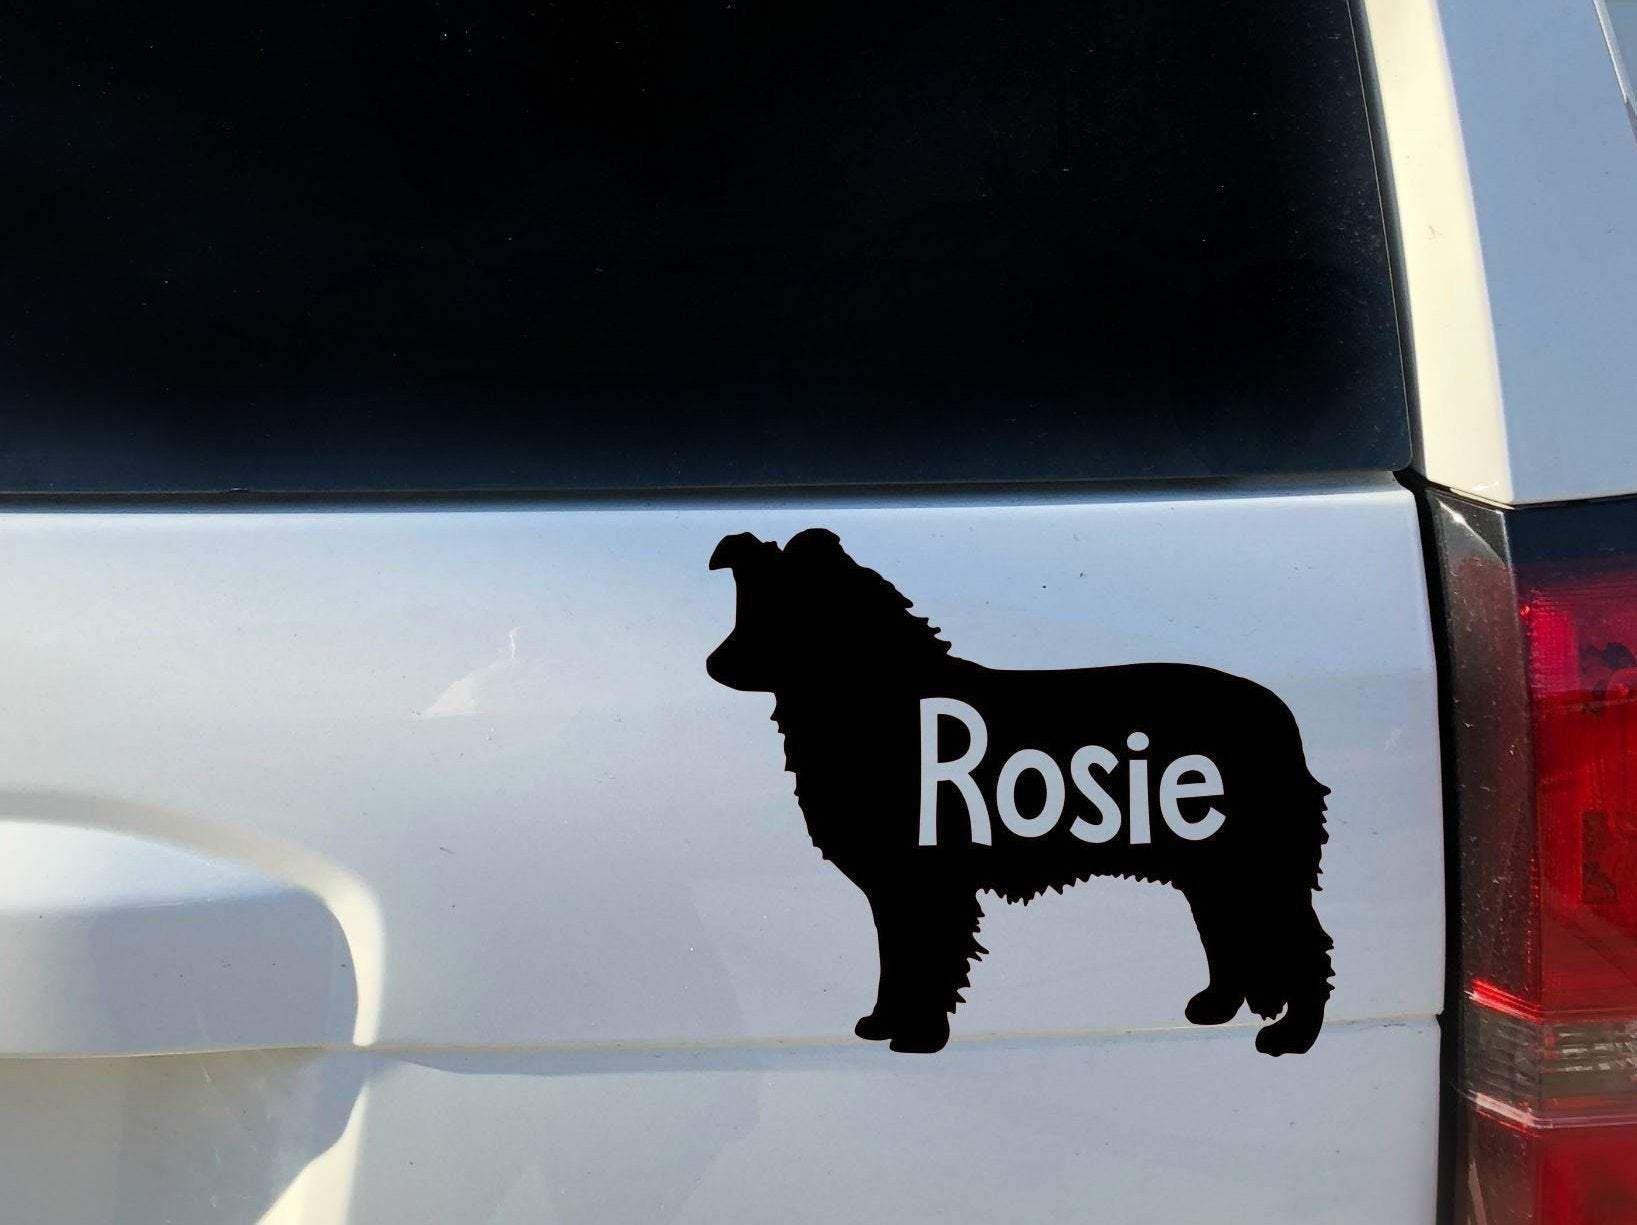 Border Collie Car Decal Black or White Personalized – 5 / Black